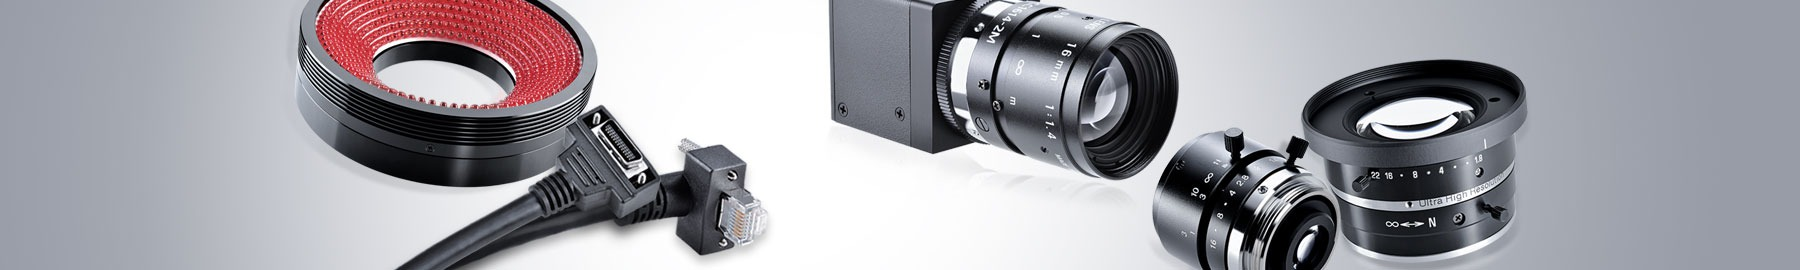 Machine Vision Products - STEMMER IMAGING